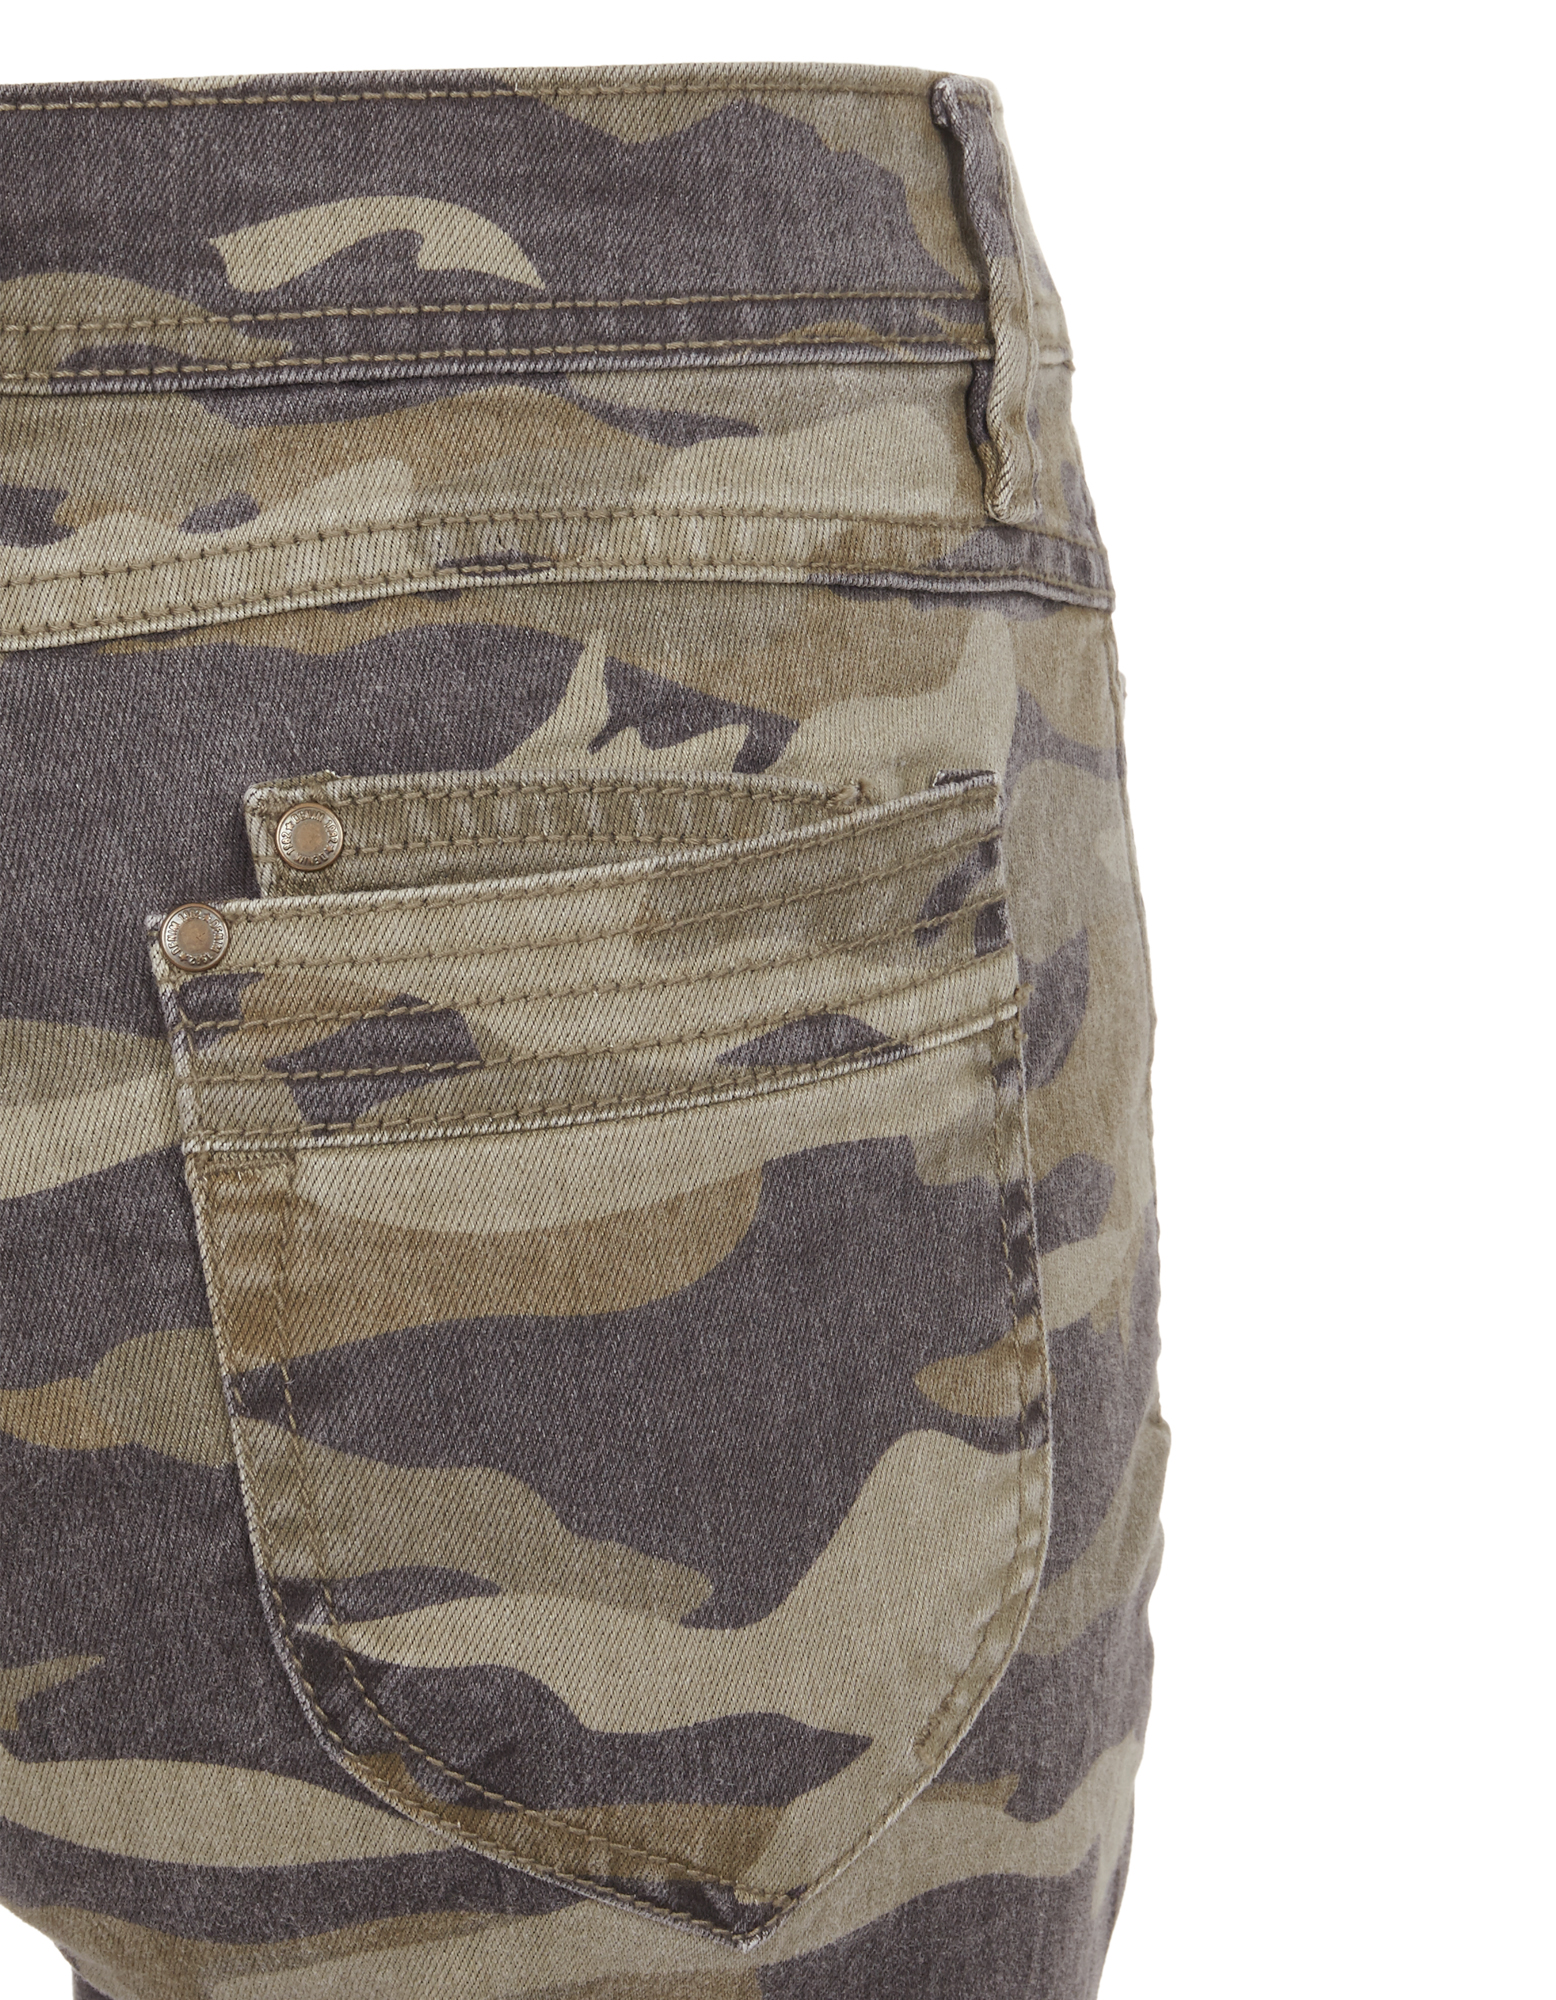 damen slim fit jeans mit camouflage muster - Jeans Mit Muster